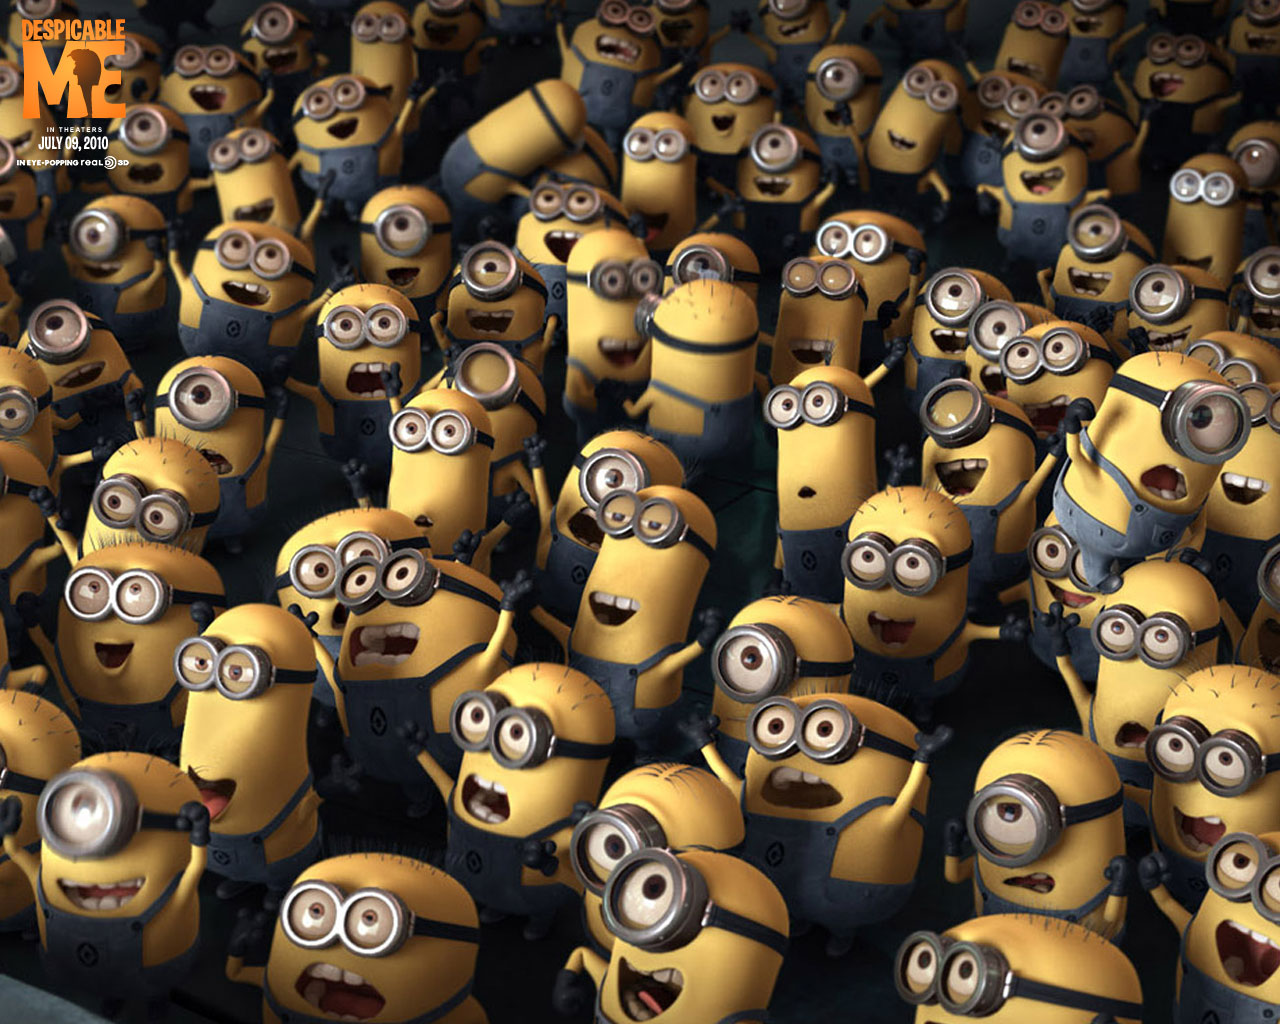 Carol's Sweet Blog: [ Despicable Me ♥♥♥ ]